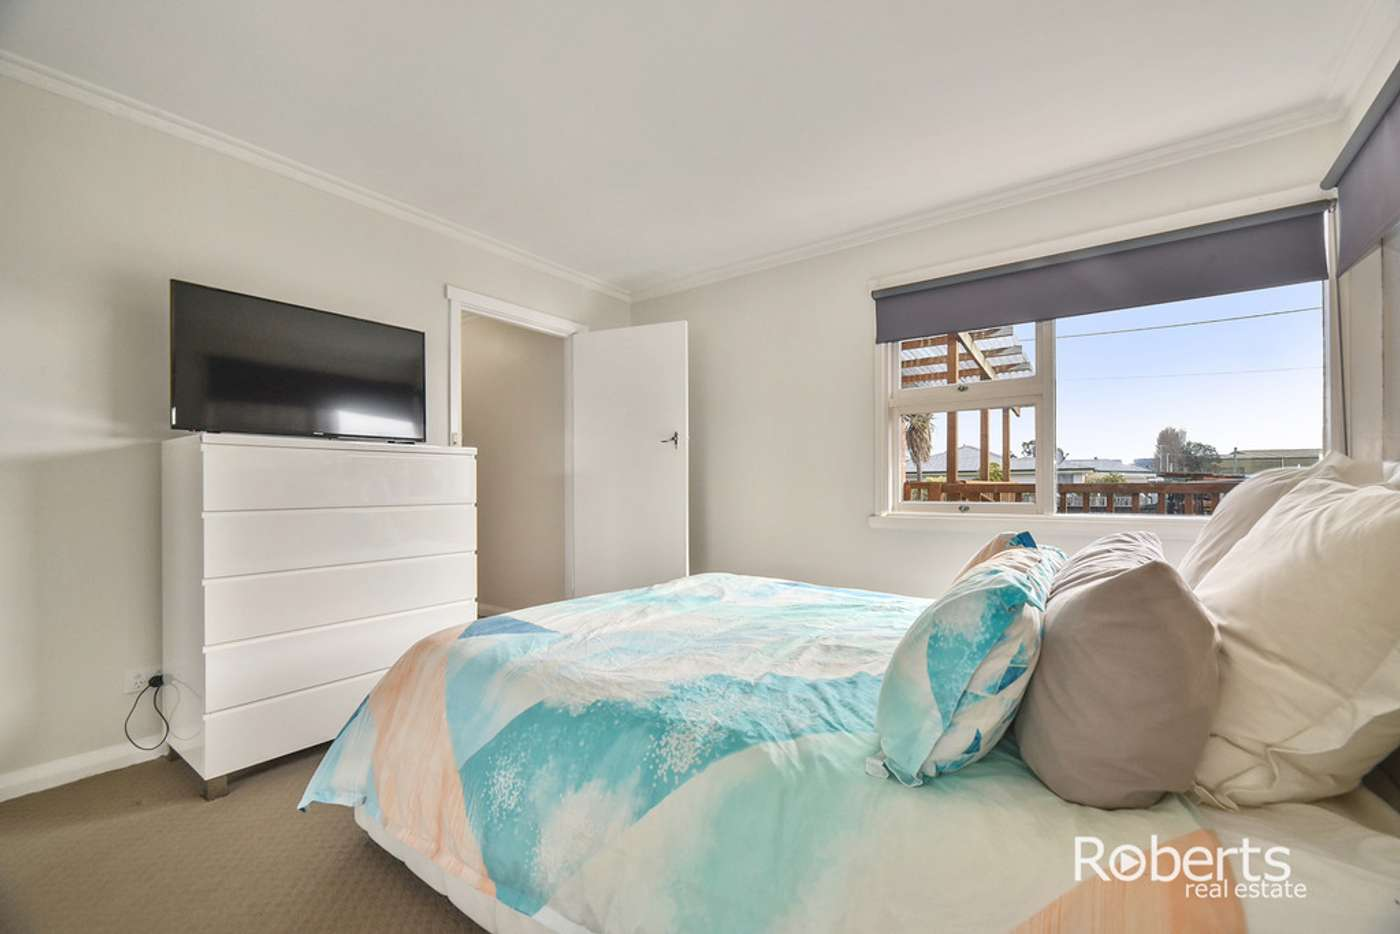 Sixth view of Homely house listing, 21 Janefield Street, Mowbray TAS 7248